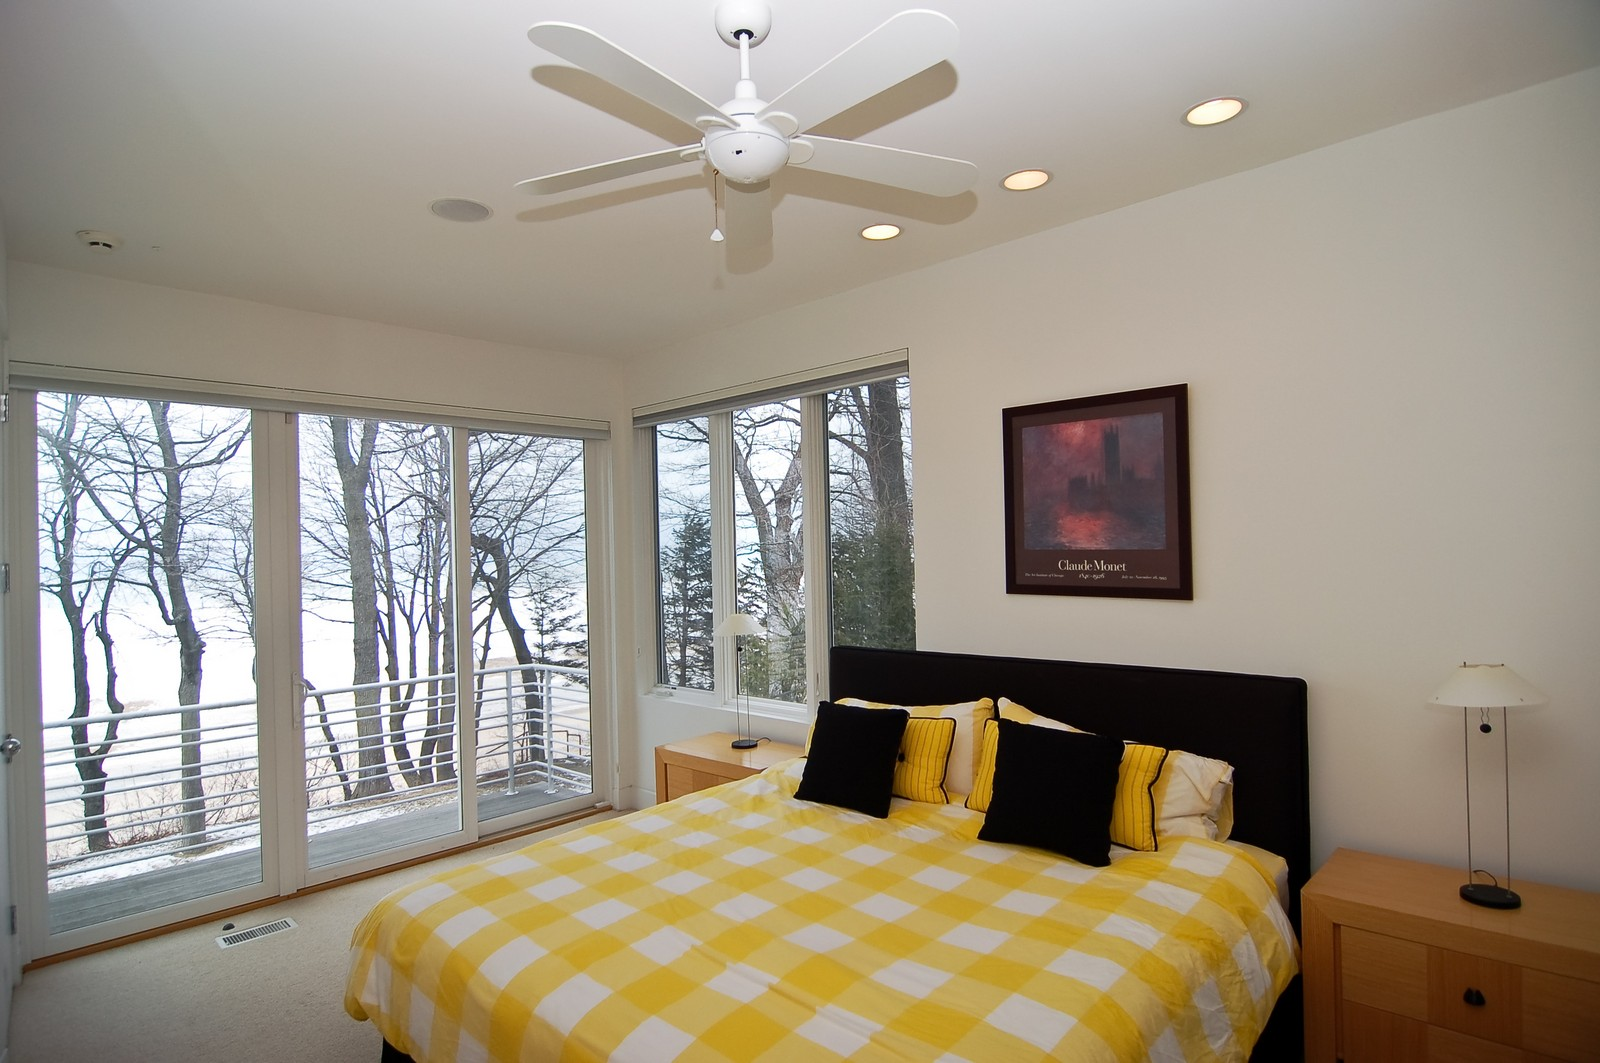 Real Estate Photography - 15930 Lake Ave, Union Pier, MI, 49129 - 3rd Bedroom